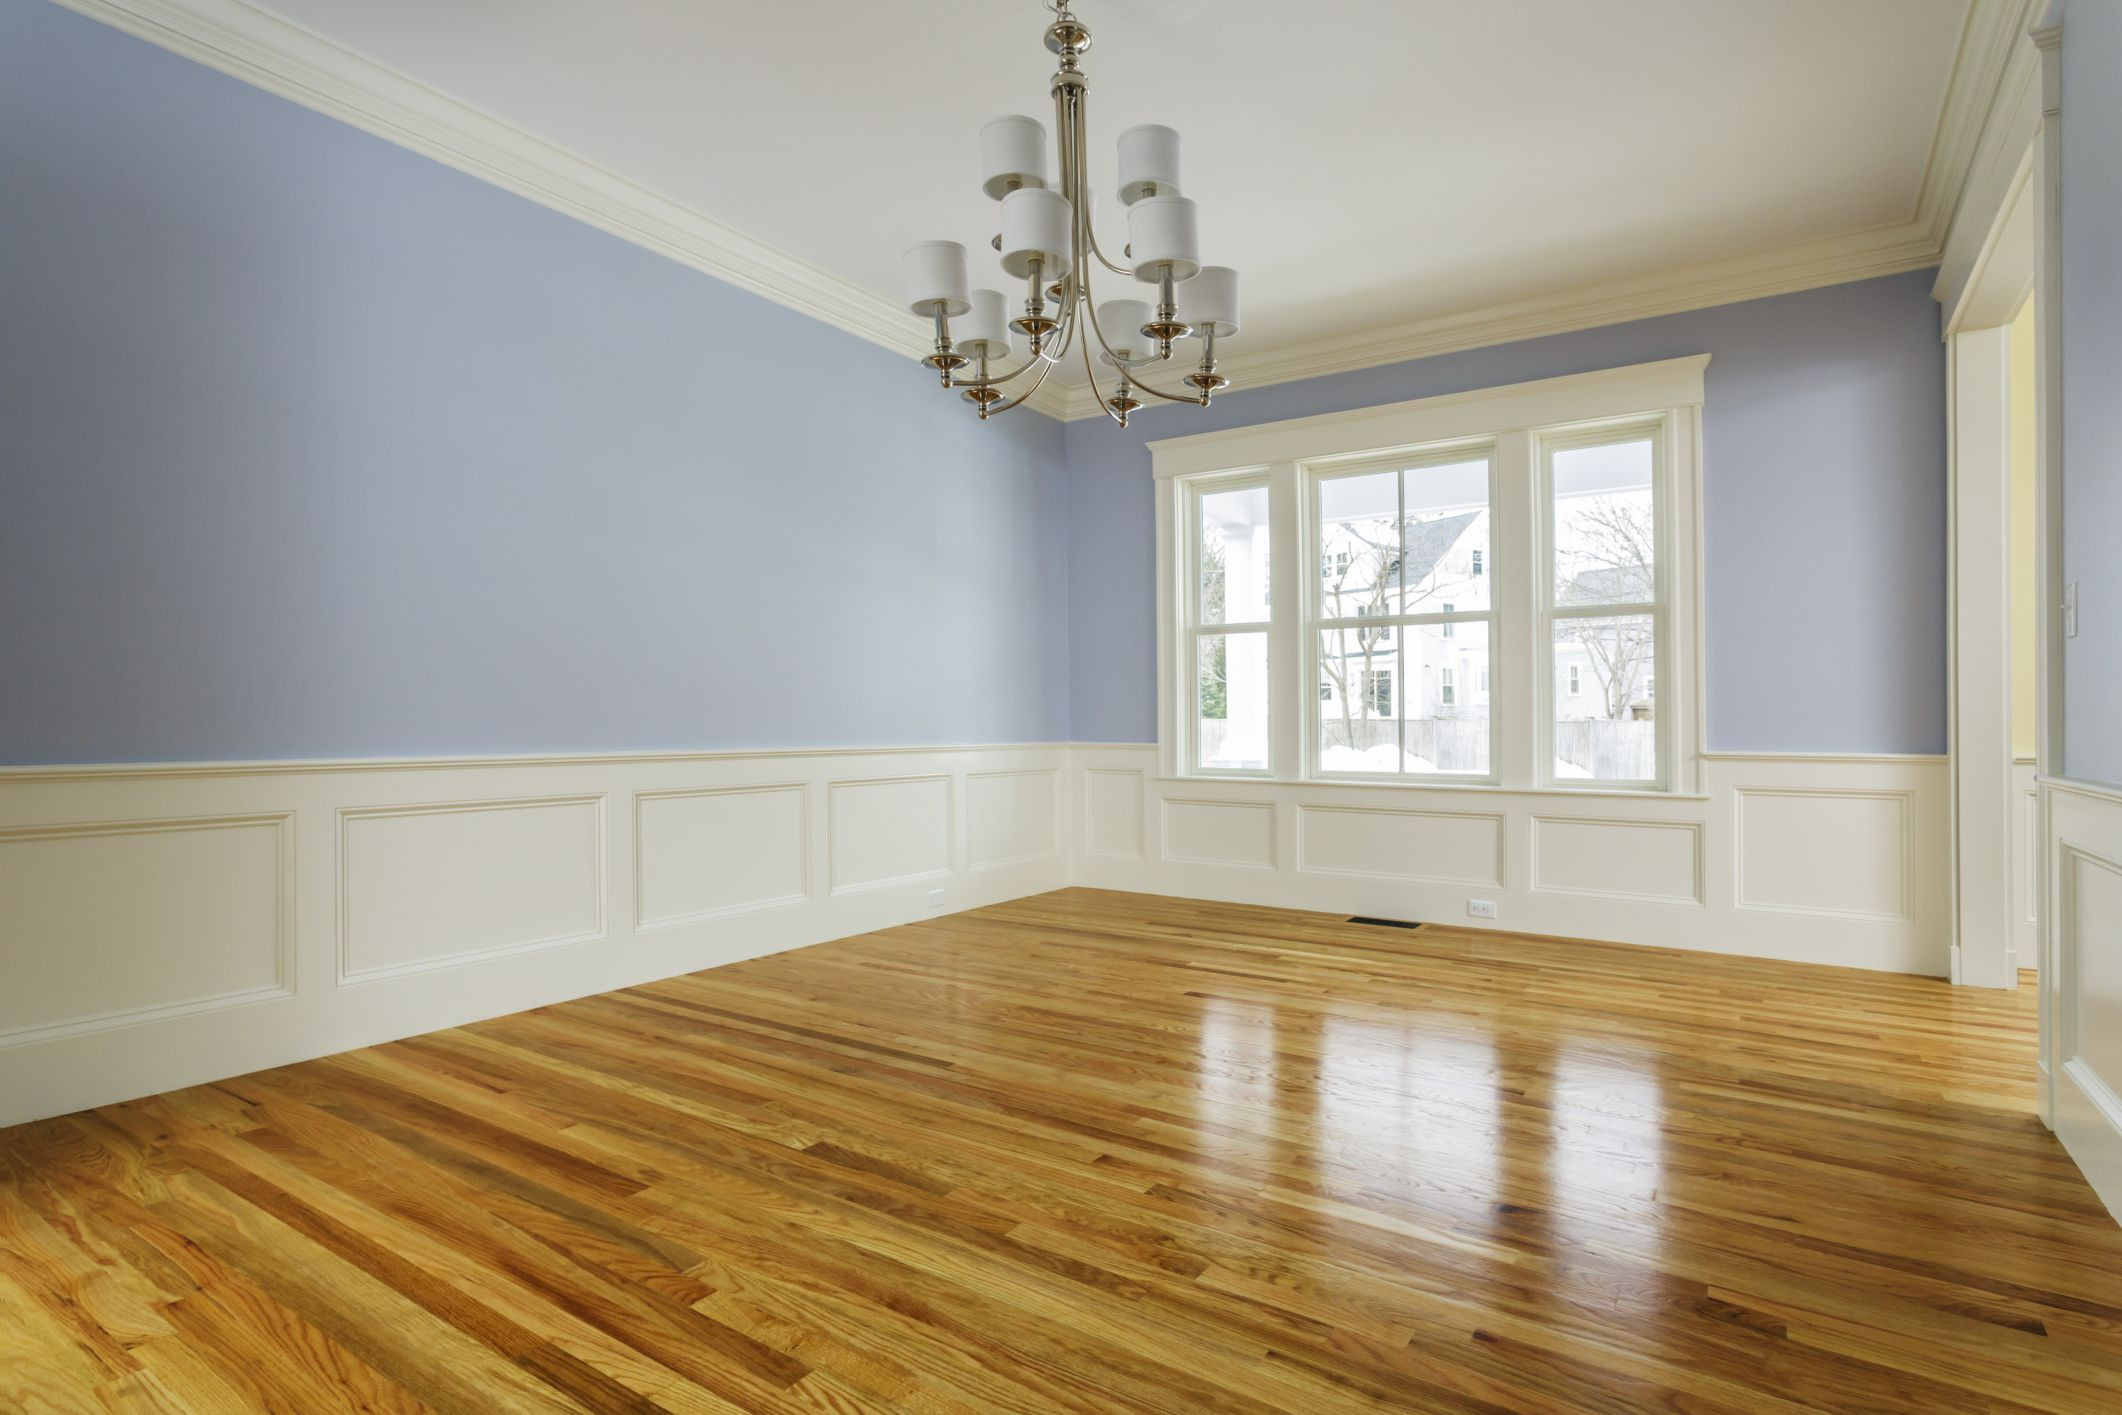 4 hickory hardwood flooring of how to make hardwood floors shiny pertaining to 168686572 56a4e87c3df78cf7728544a2